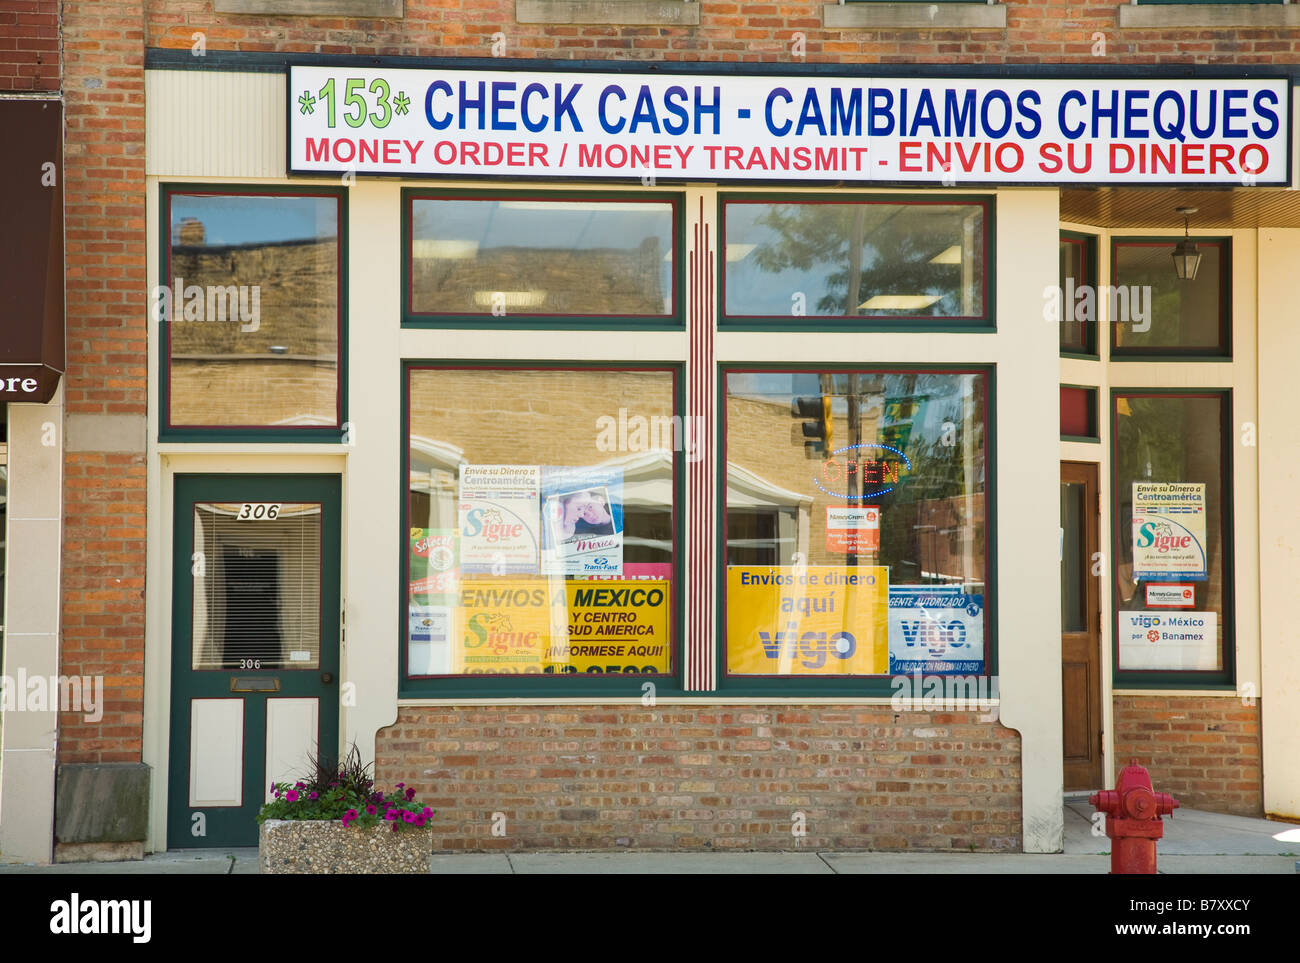 Merrick bank cash advance pin number image 8